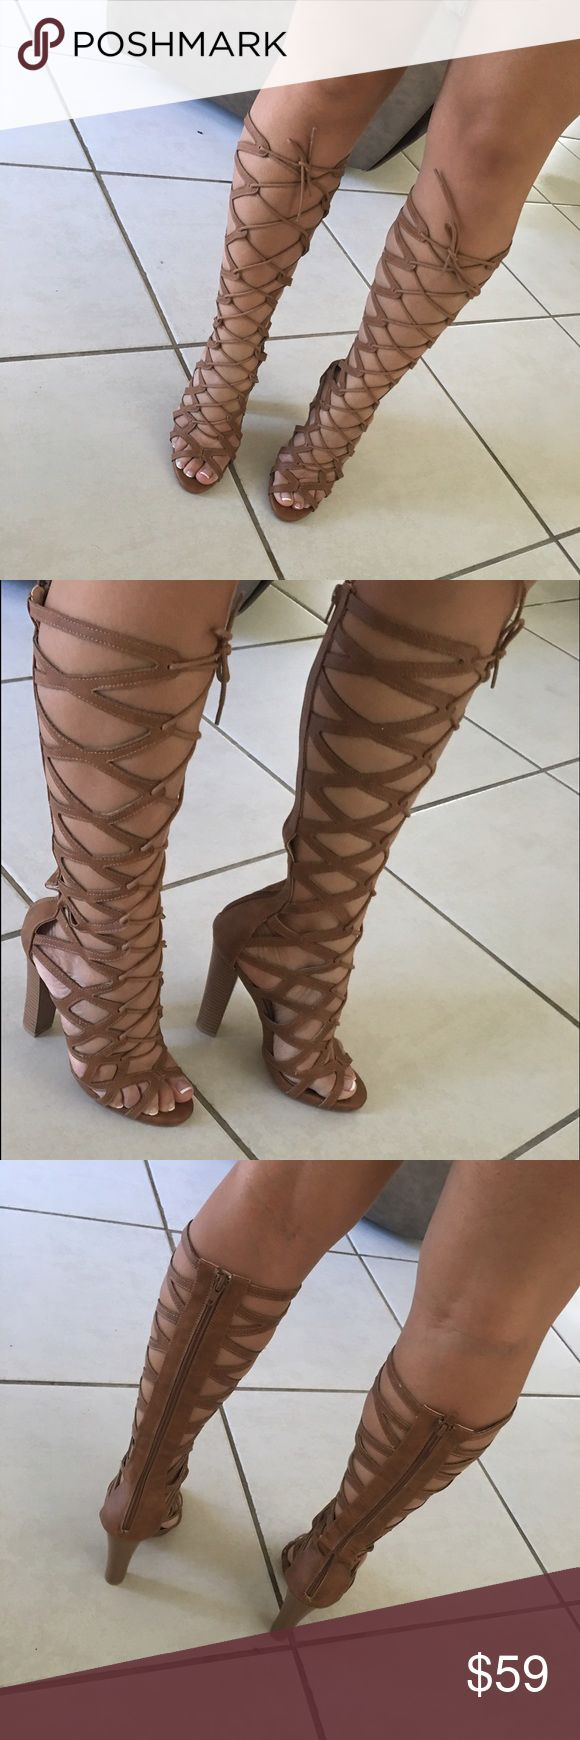 "Hour sale- Tan tall gladiator heels New.. leather tan with zipper back ...4.5"" heel. Adjustable lace up ..fits true to size no trades  no holds ⚠️⚠️firm on price unless bundling ⚠️⚠️ shop same or next day Shoes Heels"